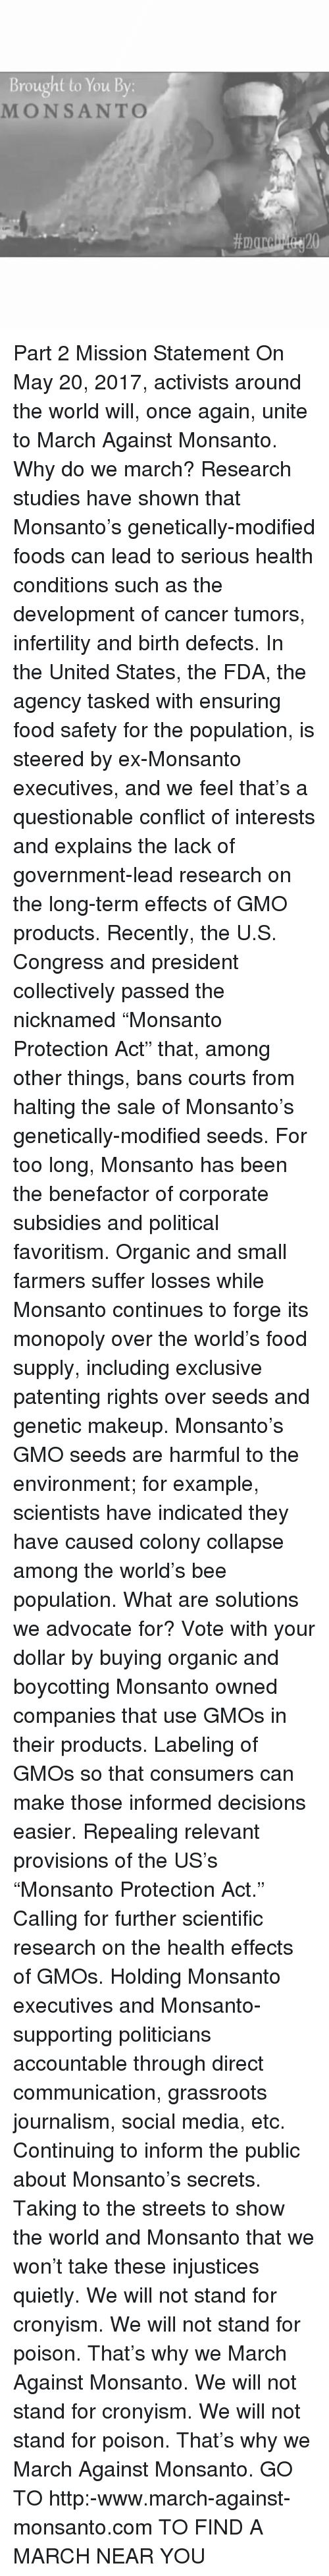 the questionable safety of genetically modified seed patenting Economic impacts of gm crops on farmers are variable and complex however, consolidation in the seed market has led to steep increases gm seed prices.